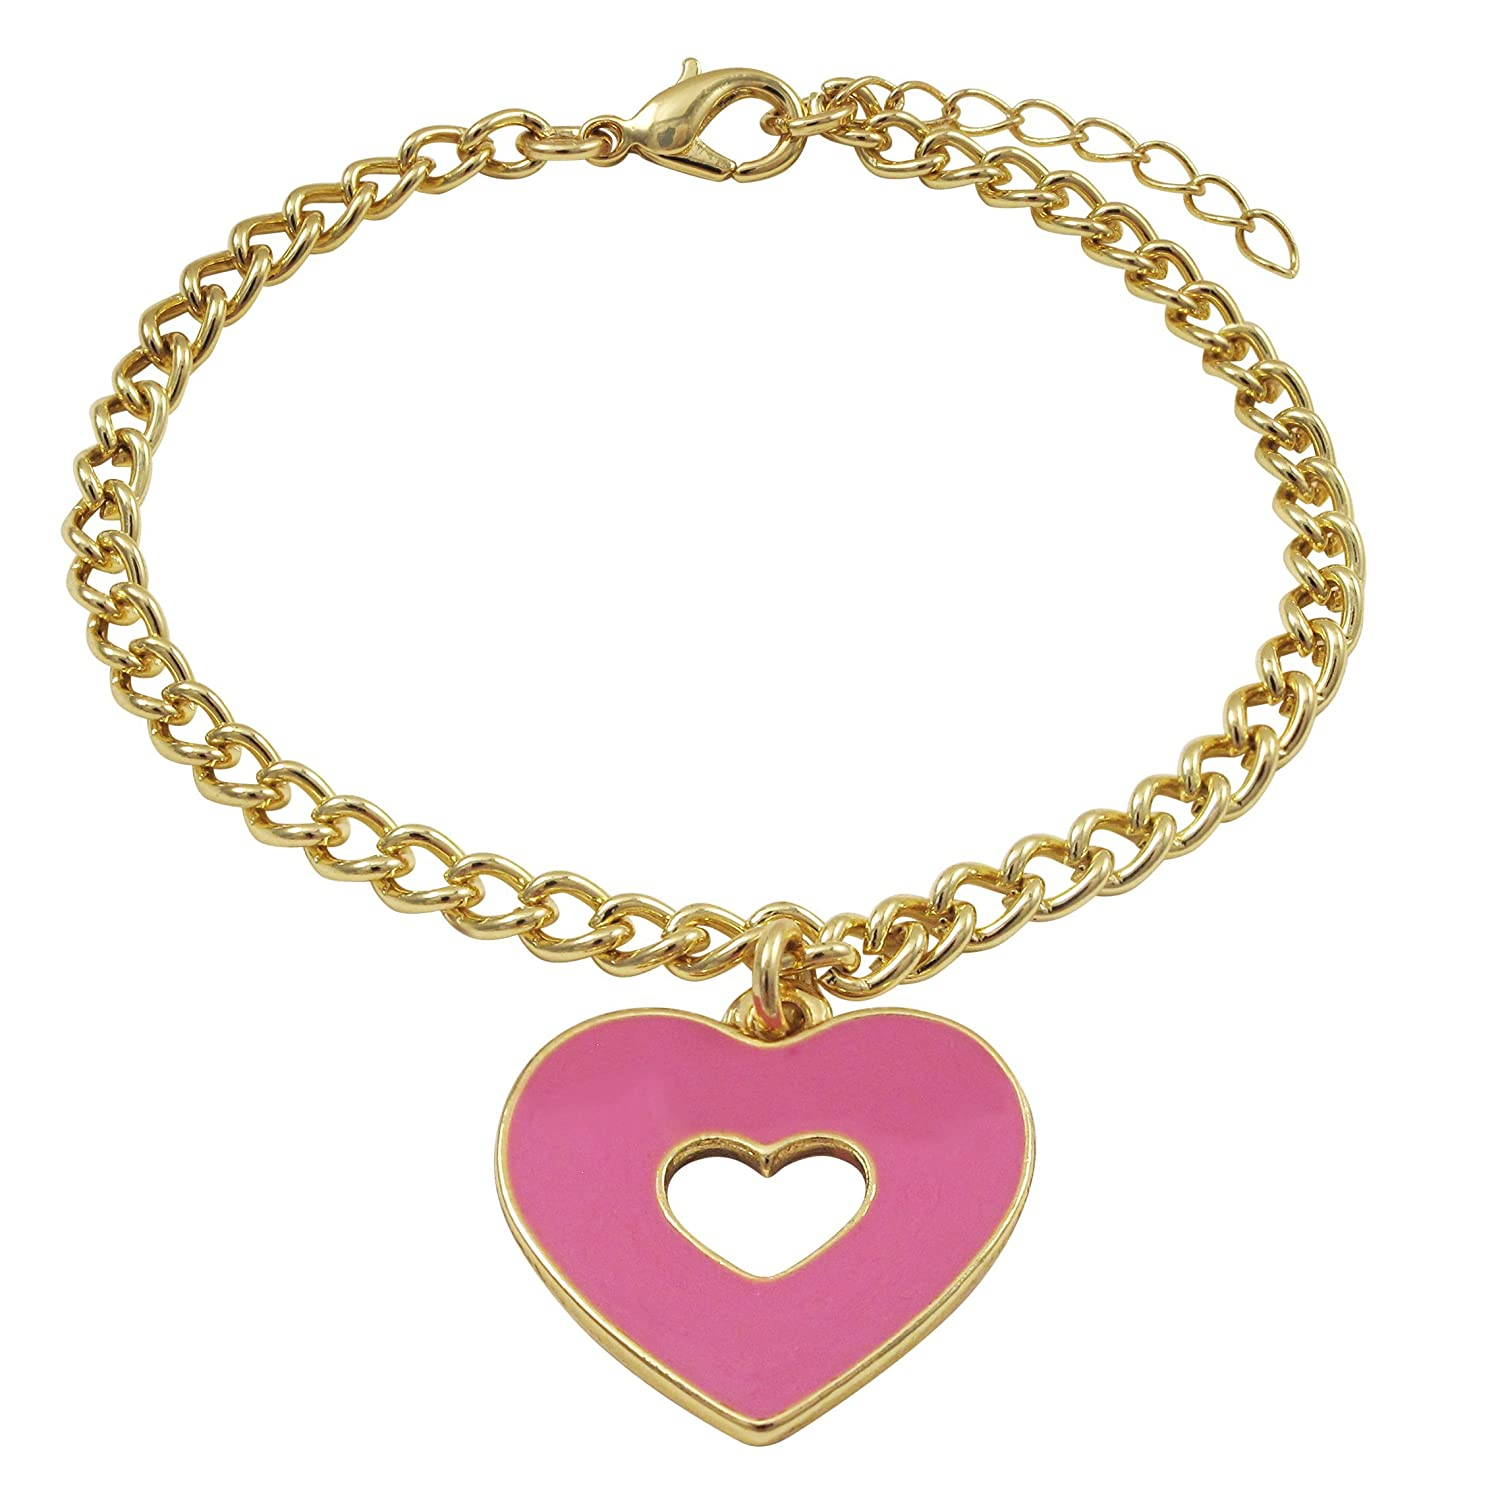 Ivy and Max Gold Finish Hot Pink Enamel Heart Girls Charm Bracelet 6.5+1 Extender